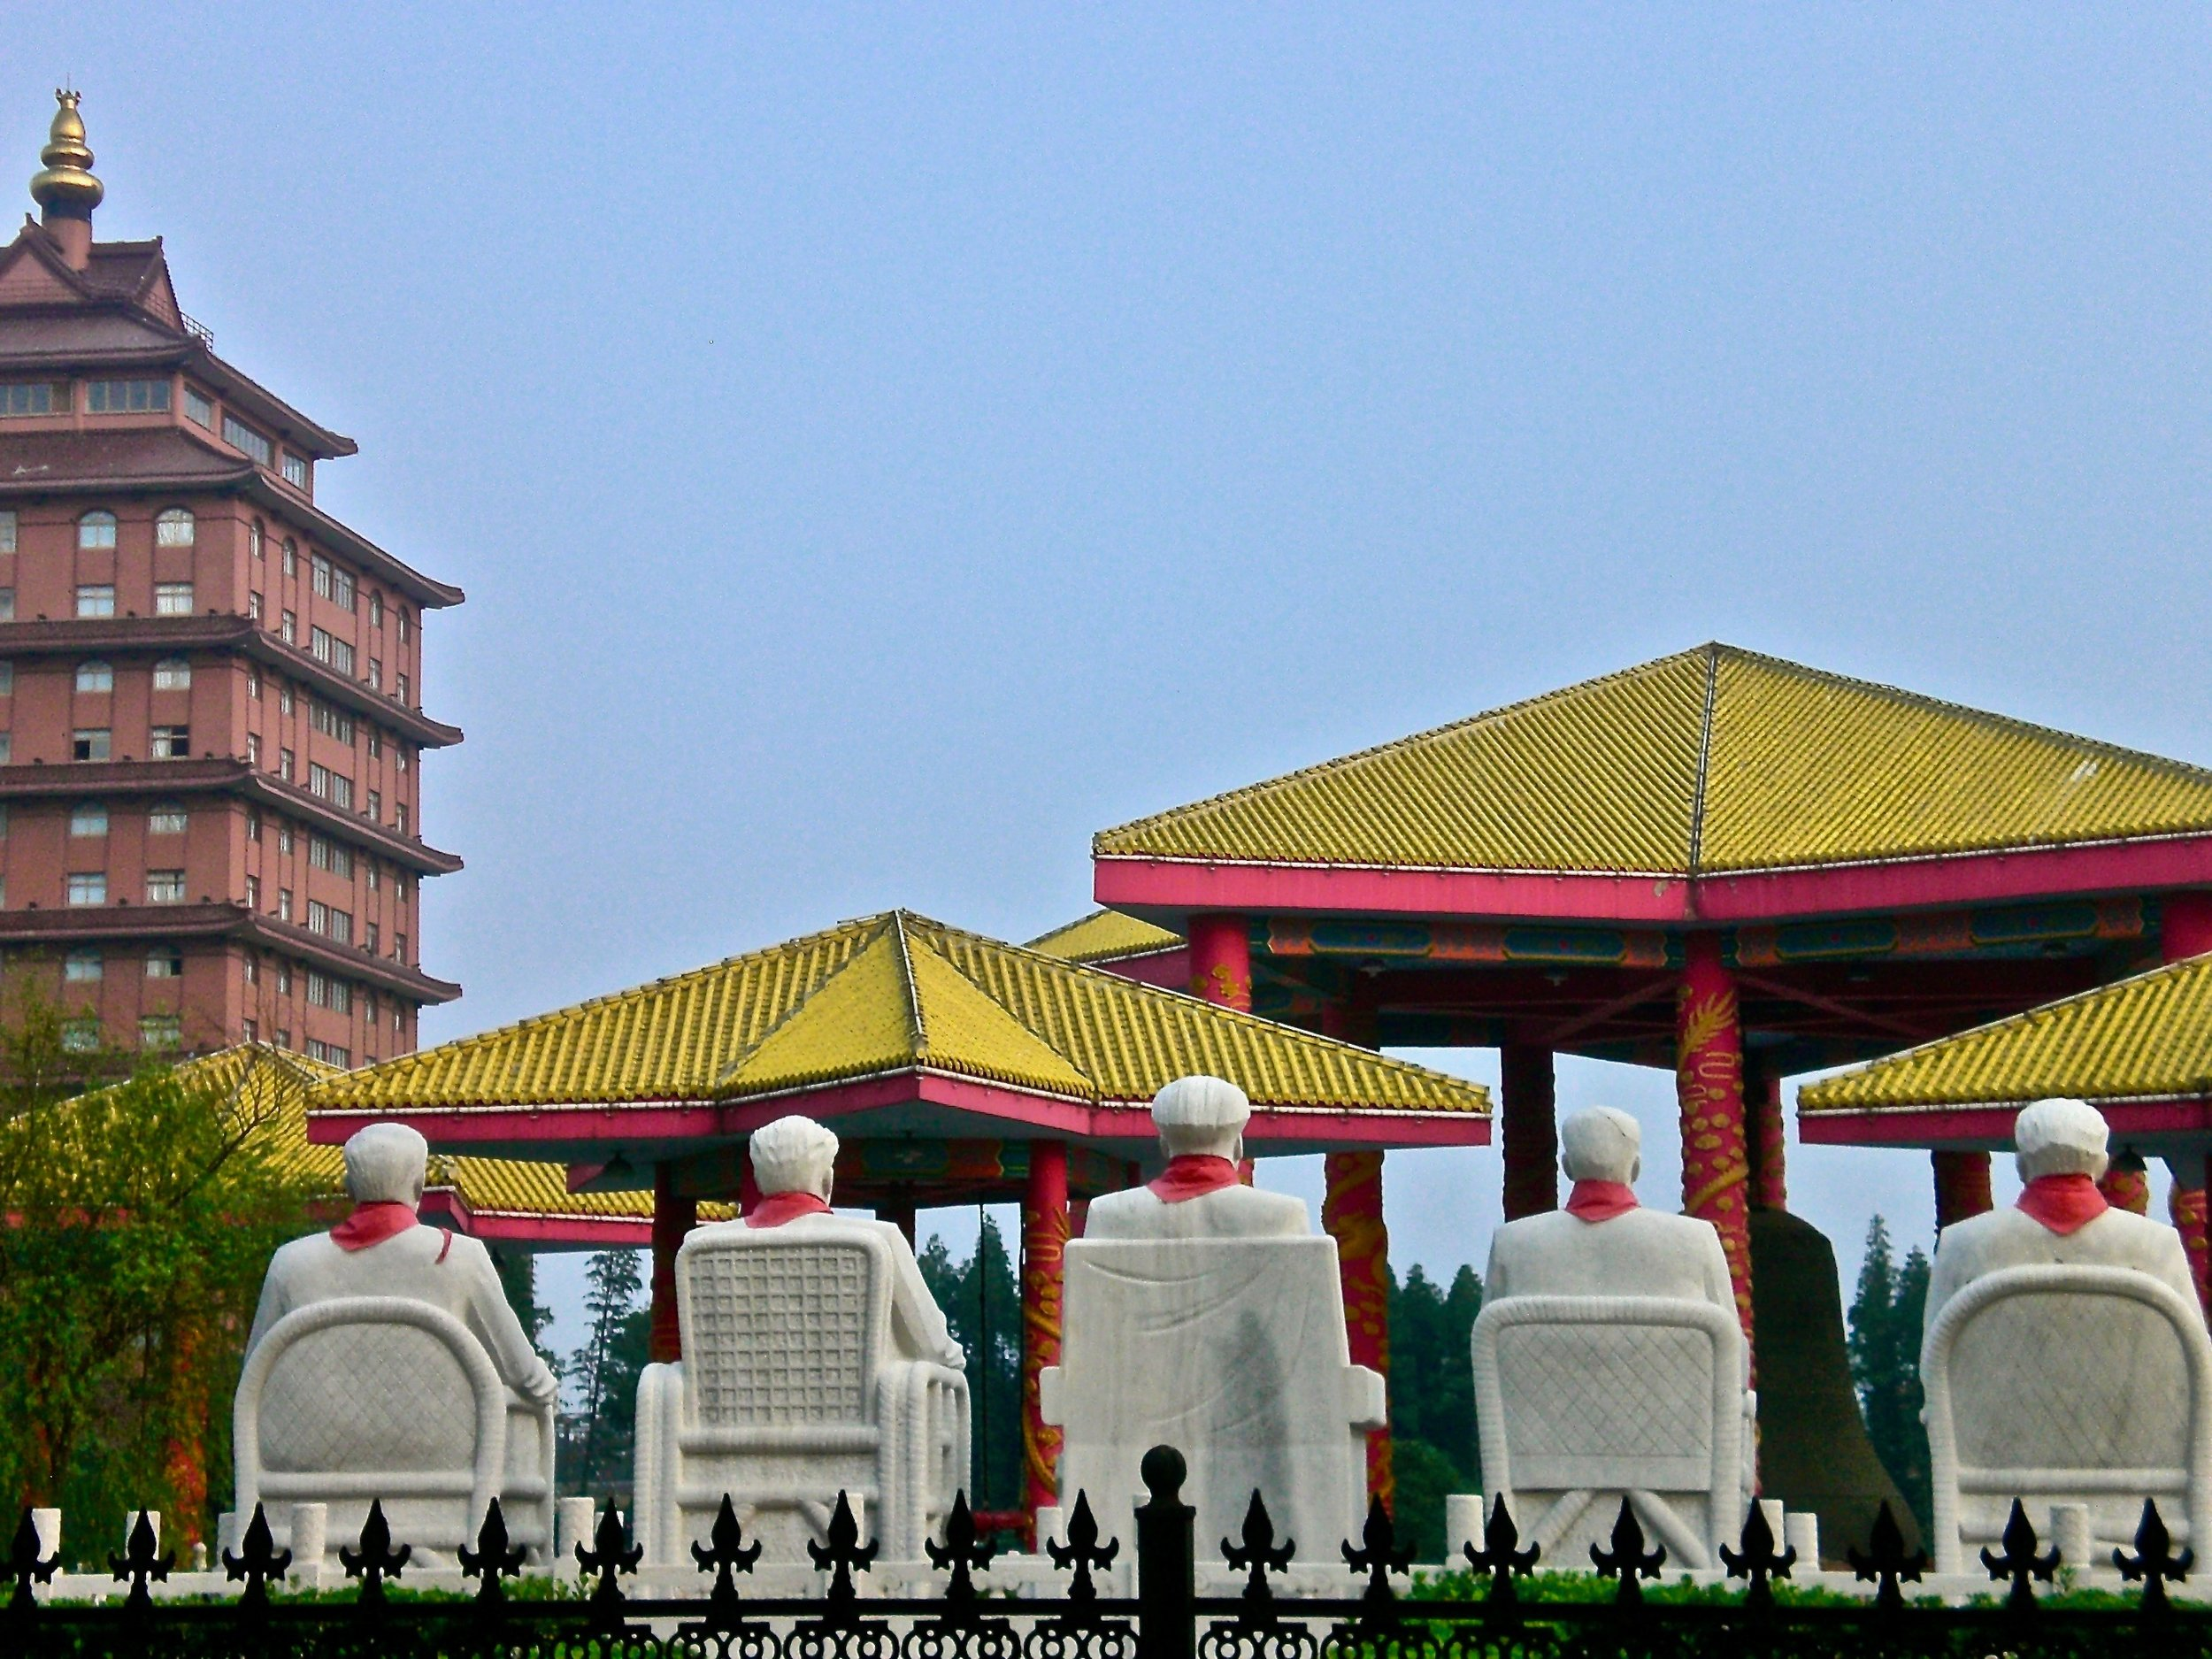 - Huaxi is known as China's richest village. Those inside the gates have villas, cars and glamour. Outside, life's harder.